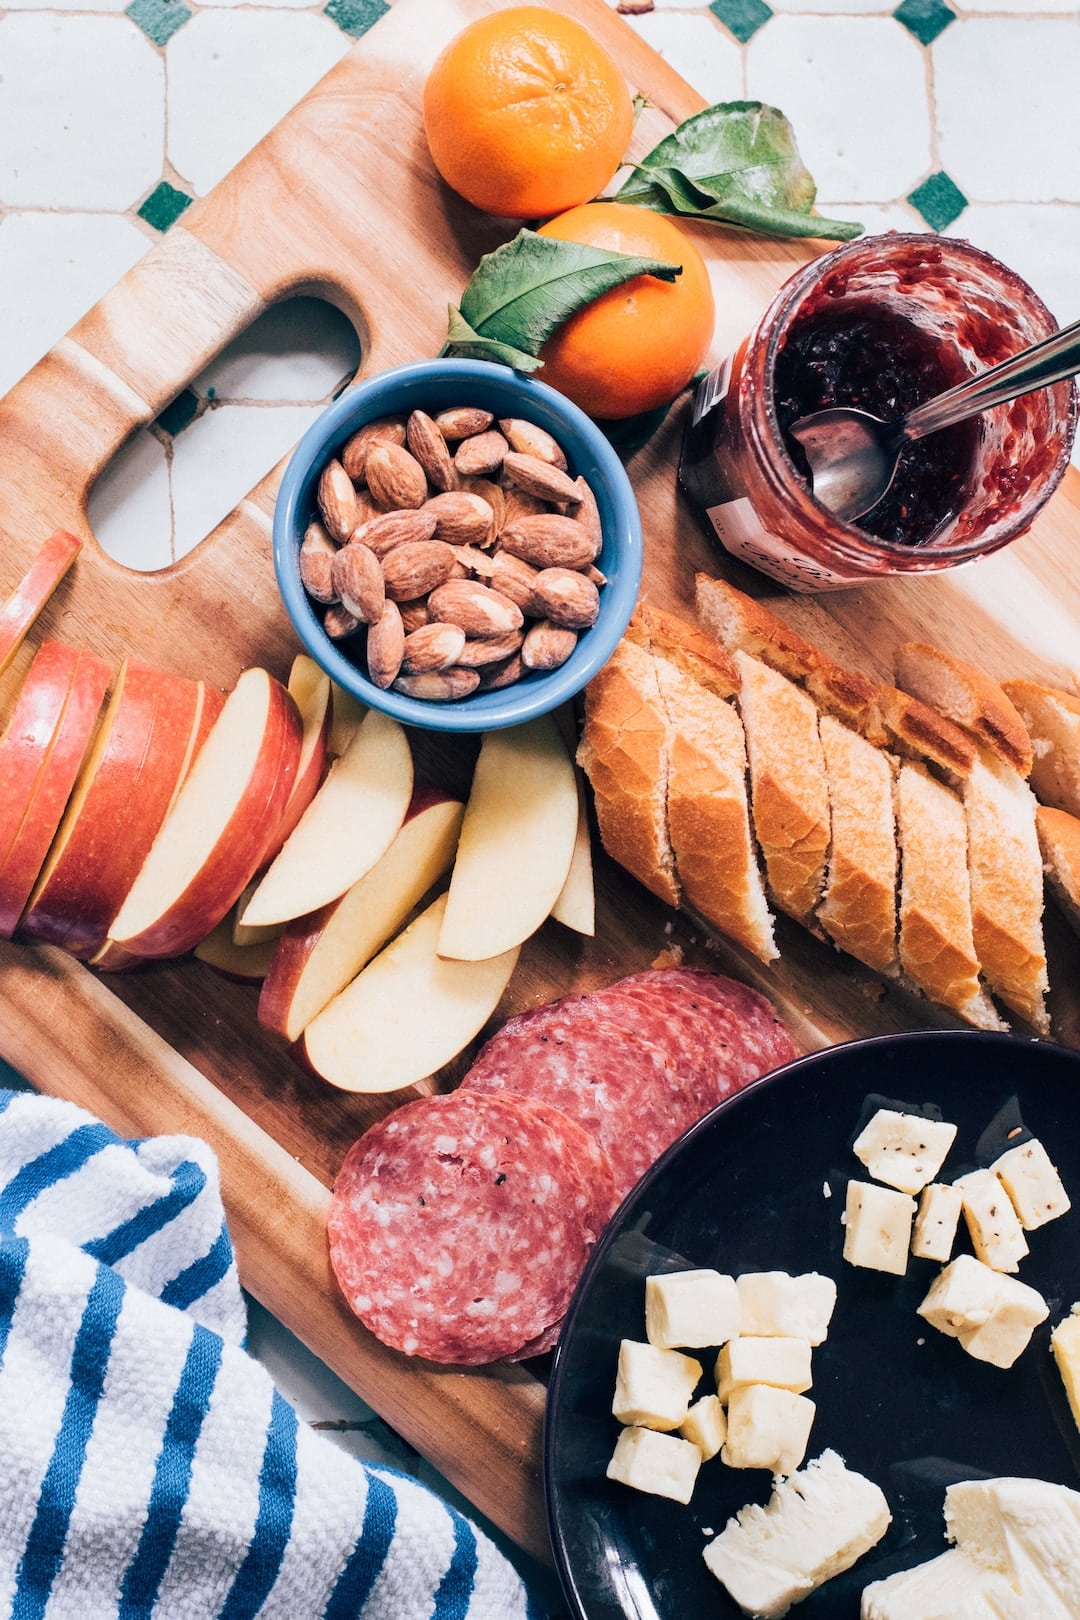 12 Charcuterie Board Ideas for Your Next Party